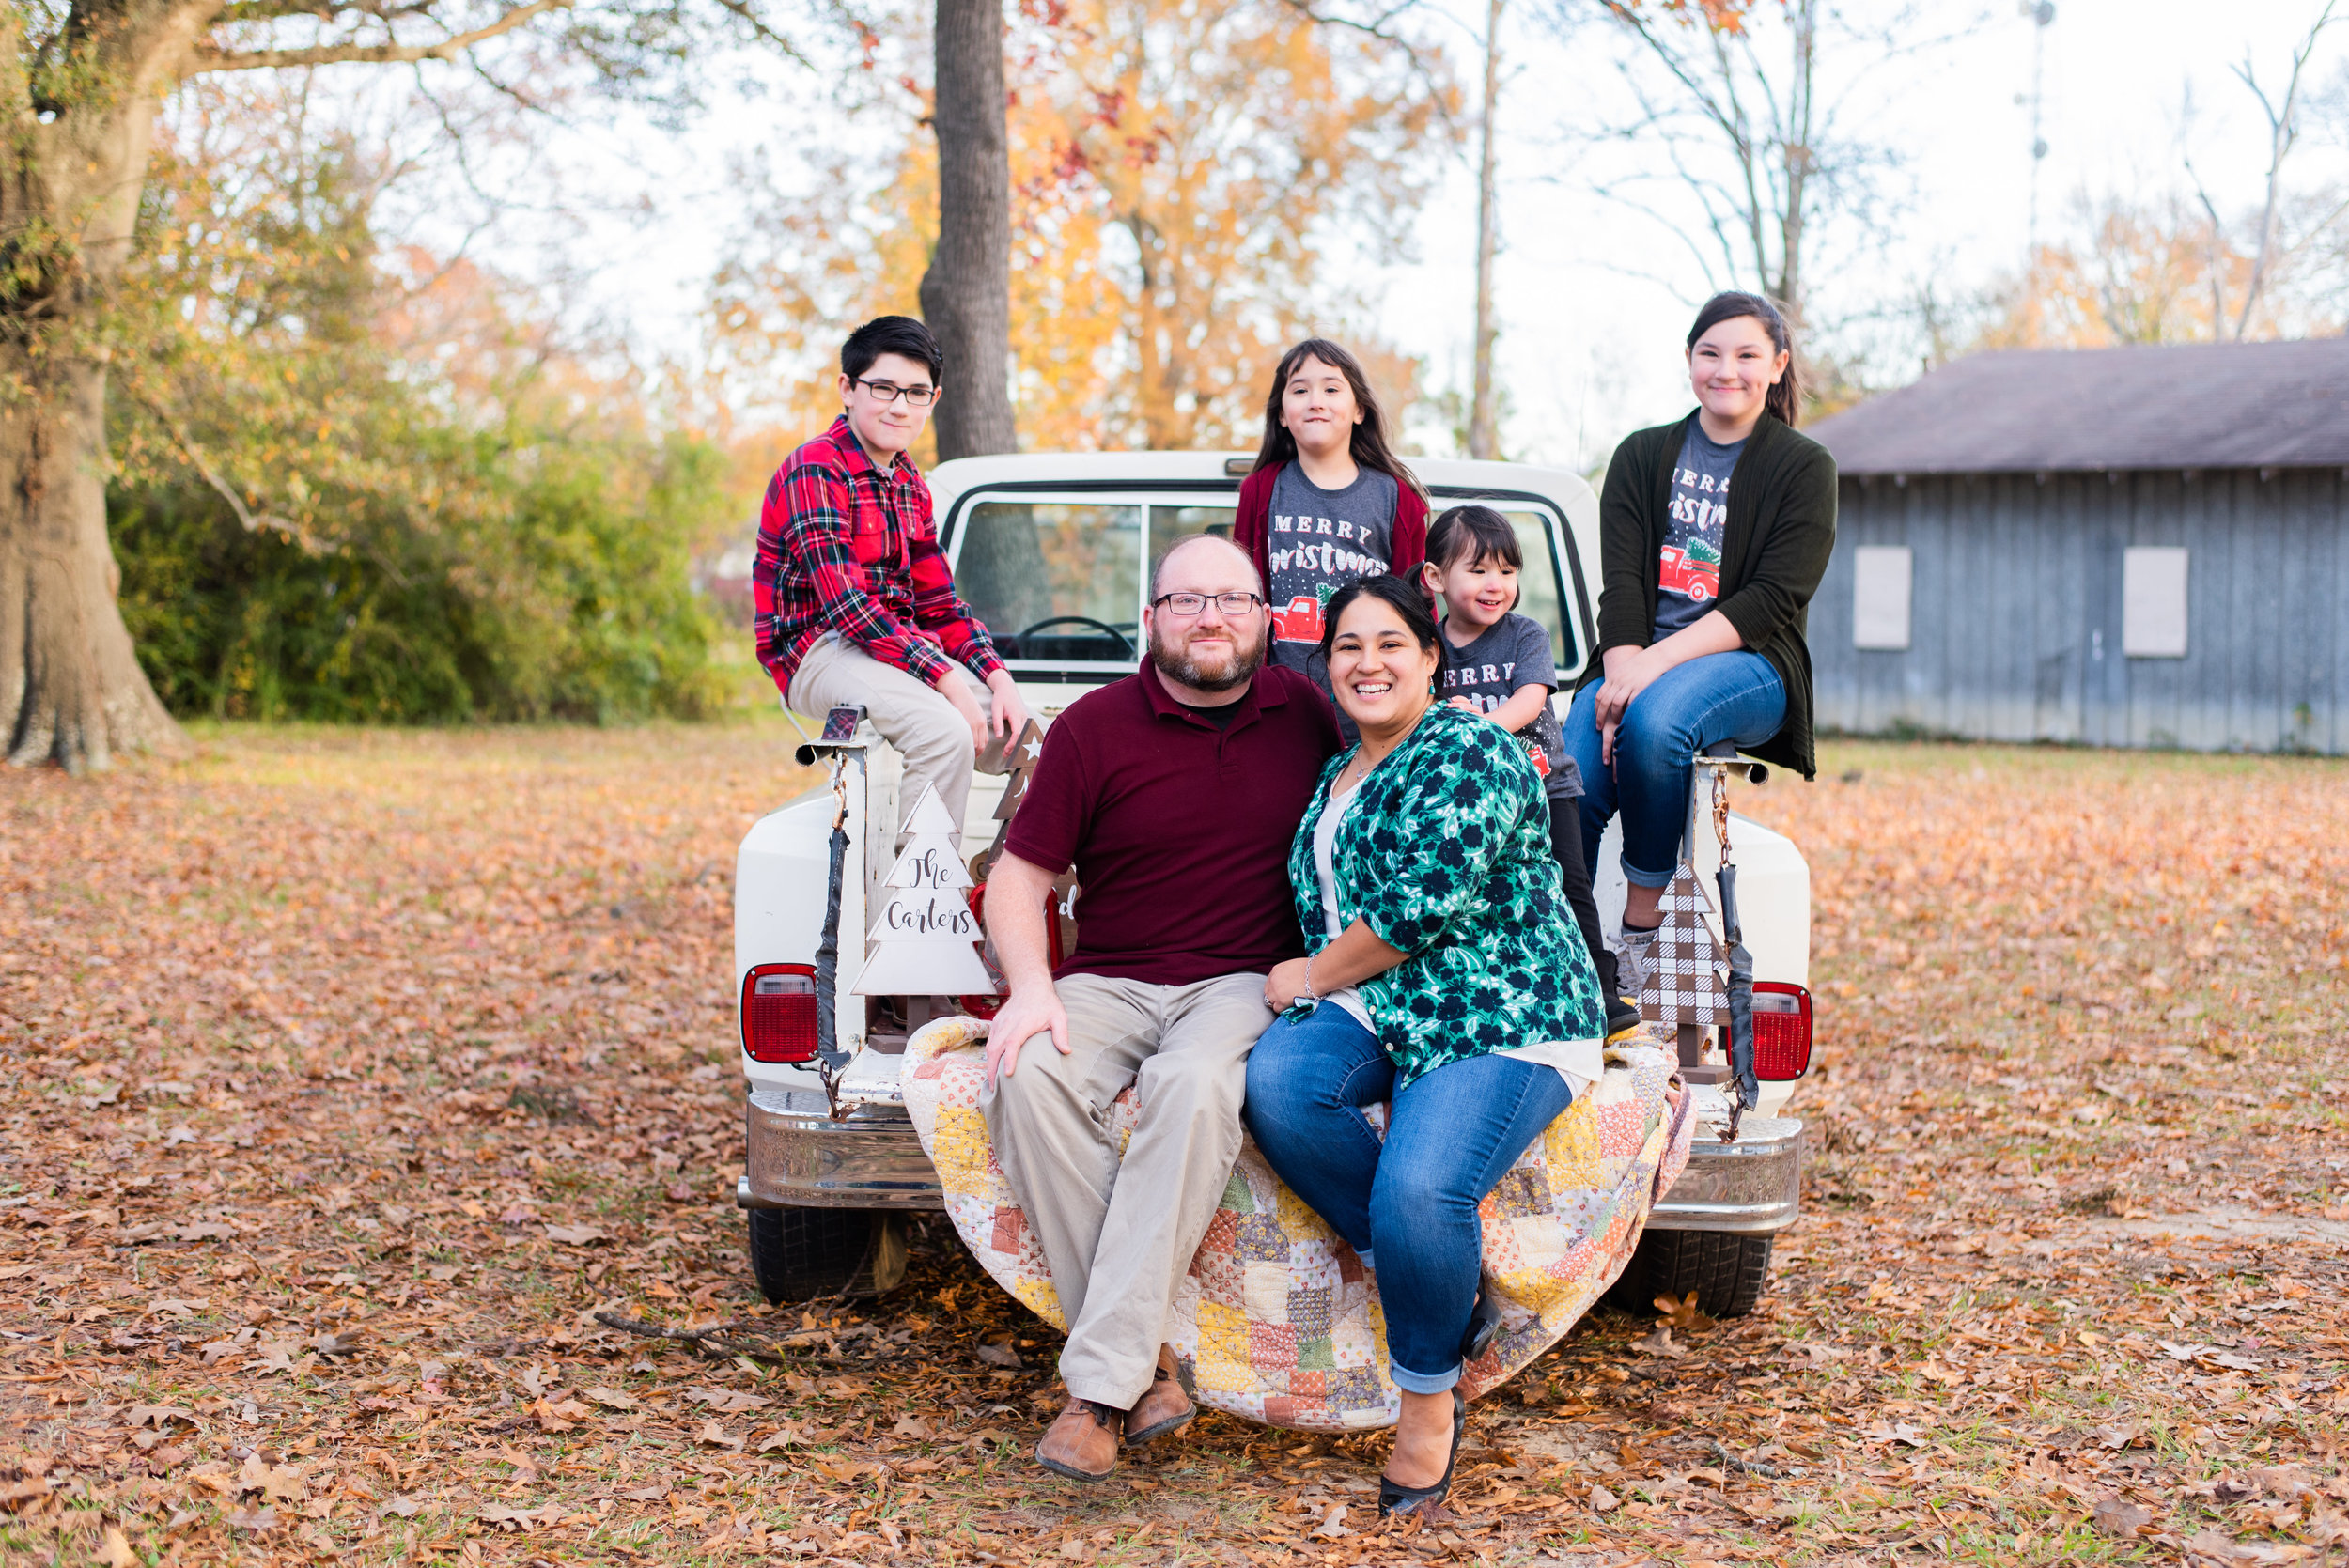 """Associate Pastor- Tom Carter   Tom and his family came to West Monroe from Garland, TX in July of 2018 to serve at Ridge Avenue.  """"My faith journey began when I was saved at the age of fifteen at summer camp with a Baptist youth group. It became my belief that Jesus is the Son of God who has taken the punishment for my sins and redeemed me to new, eternal life, removing my penalty for sin and imputing to me His righteousness.""""  """"After my salvation experience it also became clear that God did not want me to be a bystander to His work and called me to something more. In the years since my salvation I have been licensed and ordained. I have continued to serve in several Lay leadership positions. Some of my favorites have been as Bible Drill small group leader, camp counselor at Riverbend/Mt. Lebanon, GED Ministry, Mentoring, Outreach and Discipleship.""""  Tom Graduated Magna-cum-laude from UNT with my BA in Sociology with a Psychology Minor ,  Go Mean Green!  And is currently pursuing a Master of Arts in Theological Studies from Dallas Baptist University.  The Lord has blessed Tom with his faithful wife Dee and four children who have encouraged and served beside him along this journey. The Carter's commitment to the Lord as a family includes full participation in church services and activities as a family.  Tom's life verse is 1 Corinthians 10:31 which reminds us all that,   """"Whether, then, you eat or drink or whatever you do, do all to the glory of God.""""    Email Tom: tcarterrabc@outlook.com"""